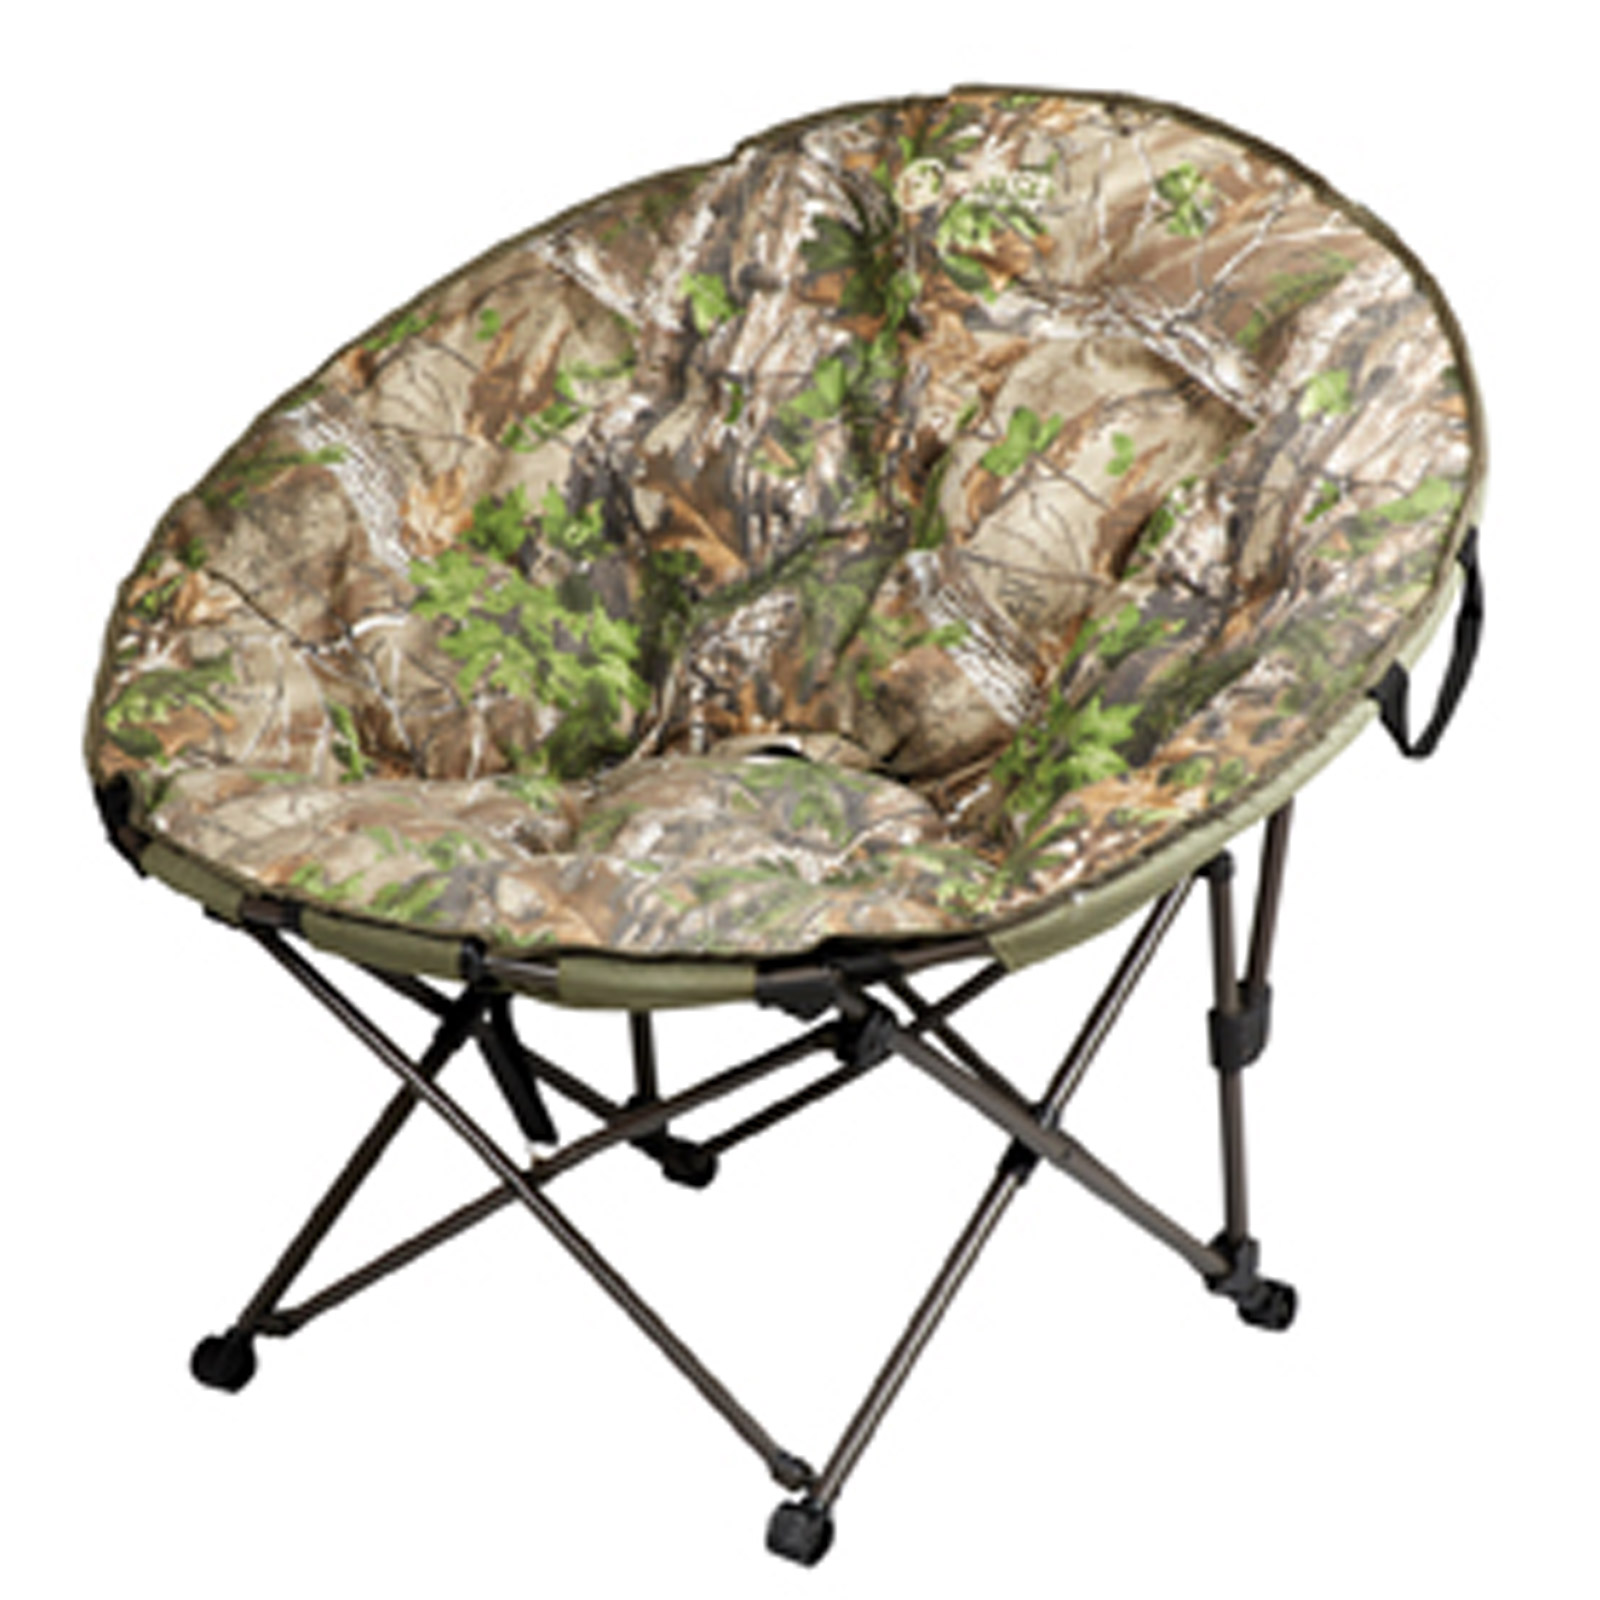 Camo Lounge Chair: 7282,Hunter's Specialties 0 Papason Camo Lounge Fold